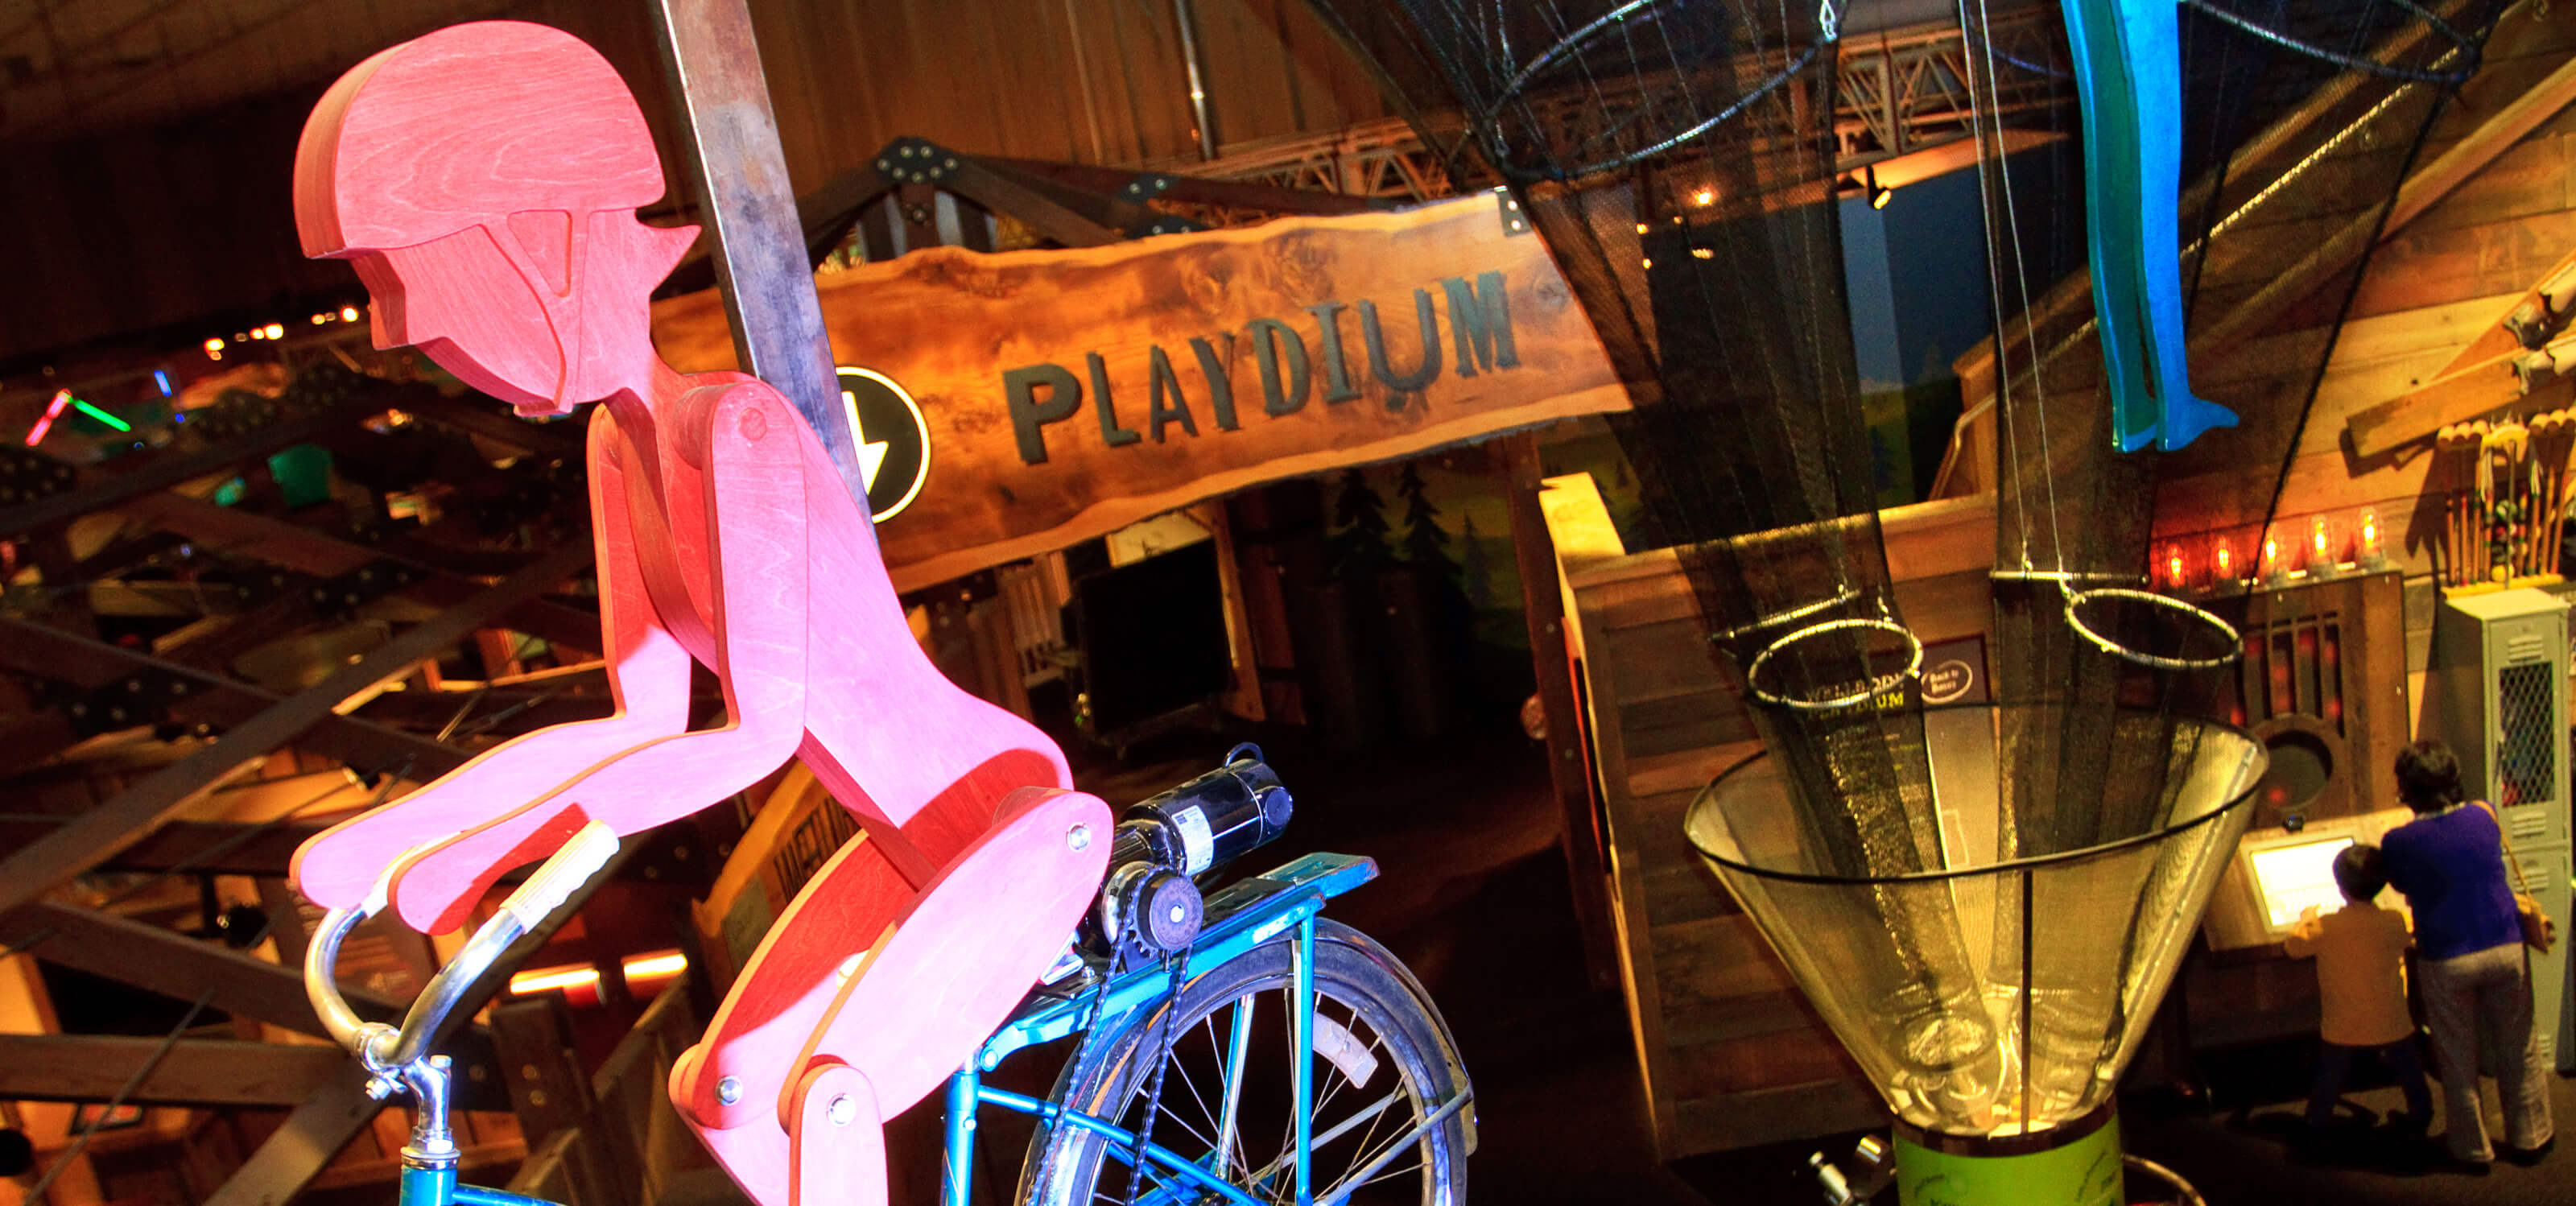 View from above the Playdium section, with a red wooden figure riding a bike in the foreground